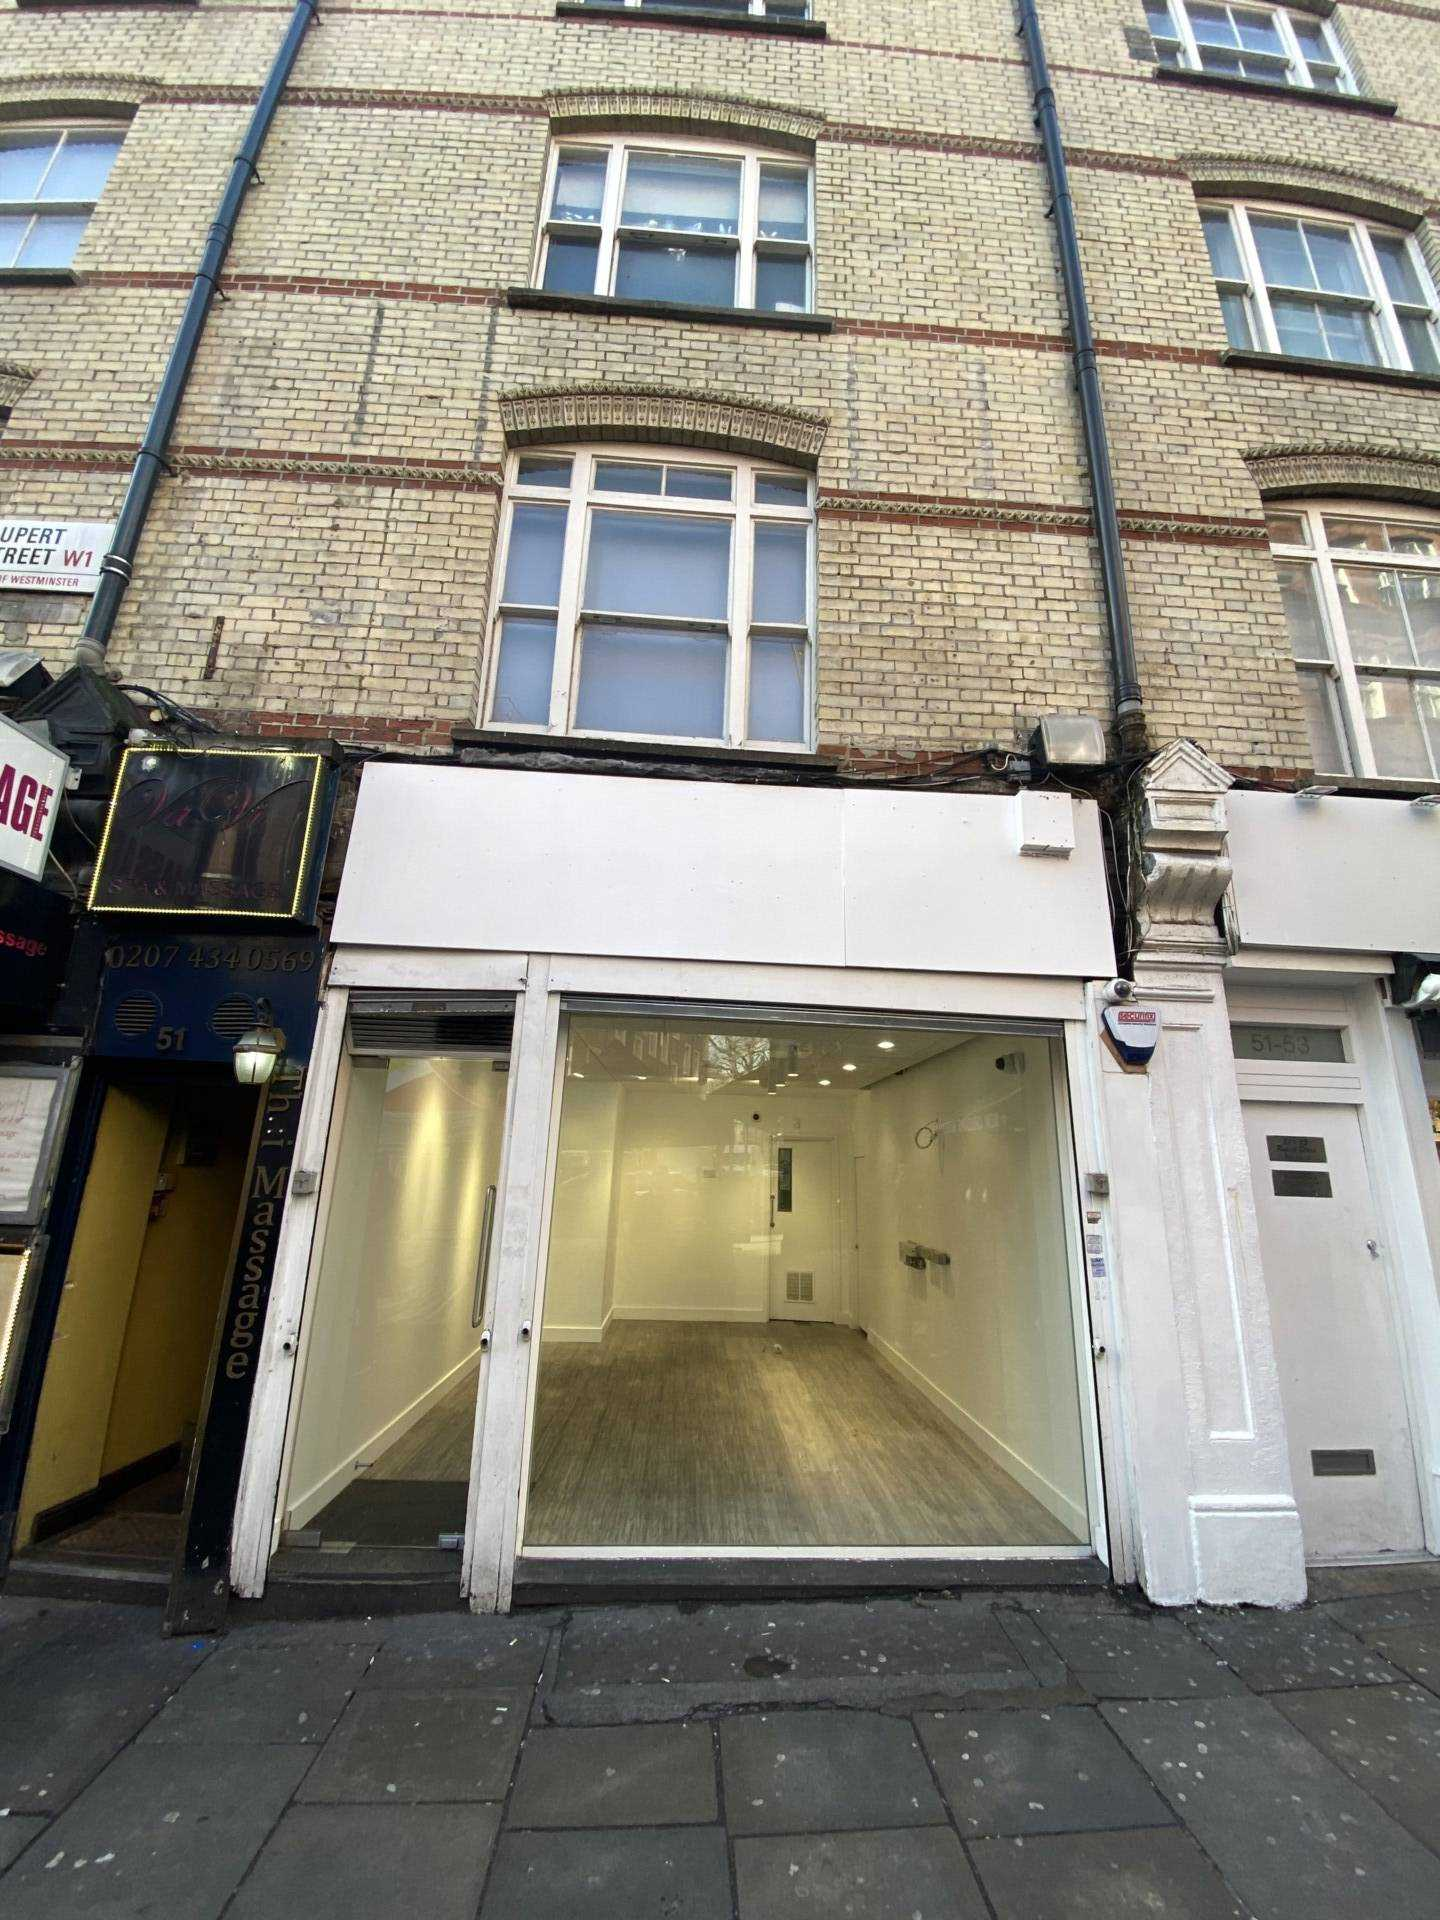 0 bed Retail Property (High Street) for rent in London. From Next Property - London